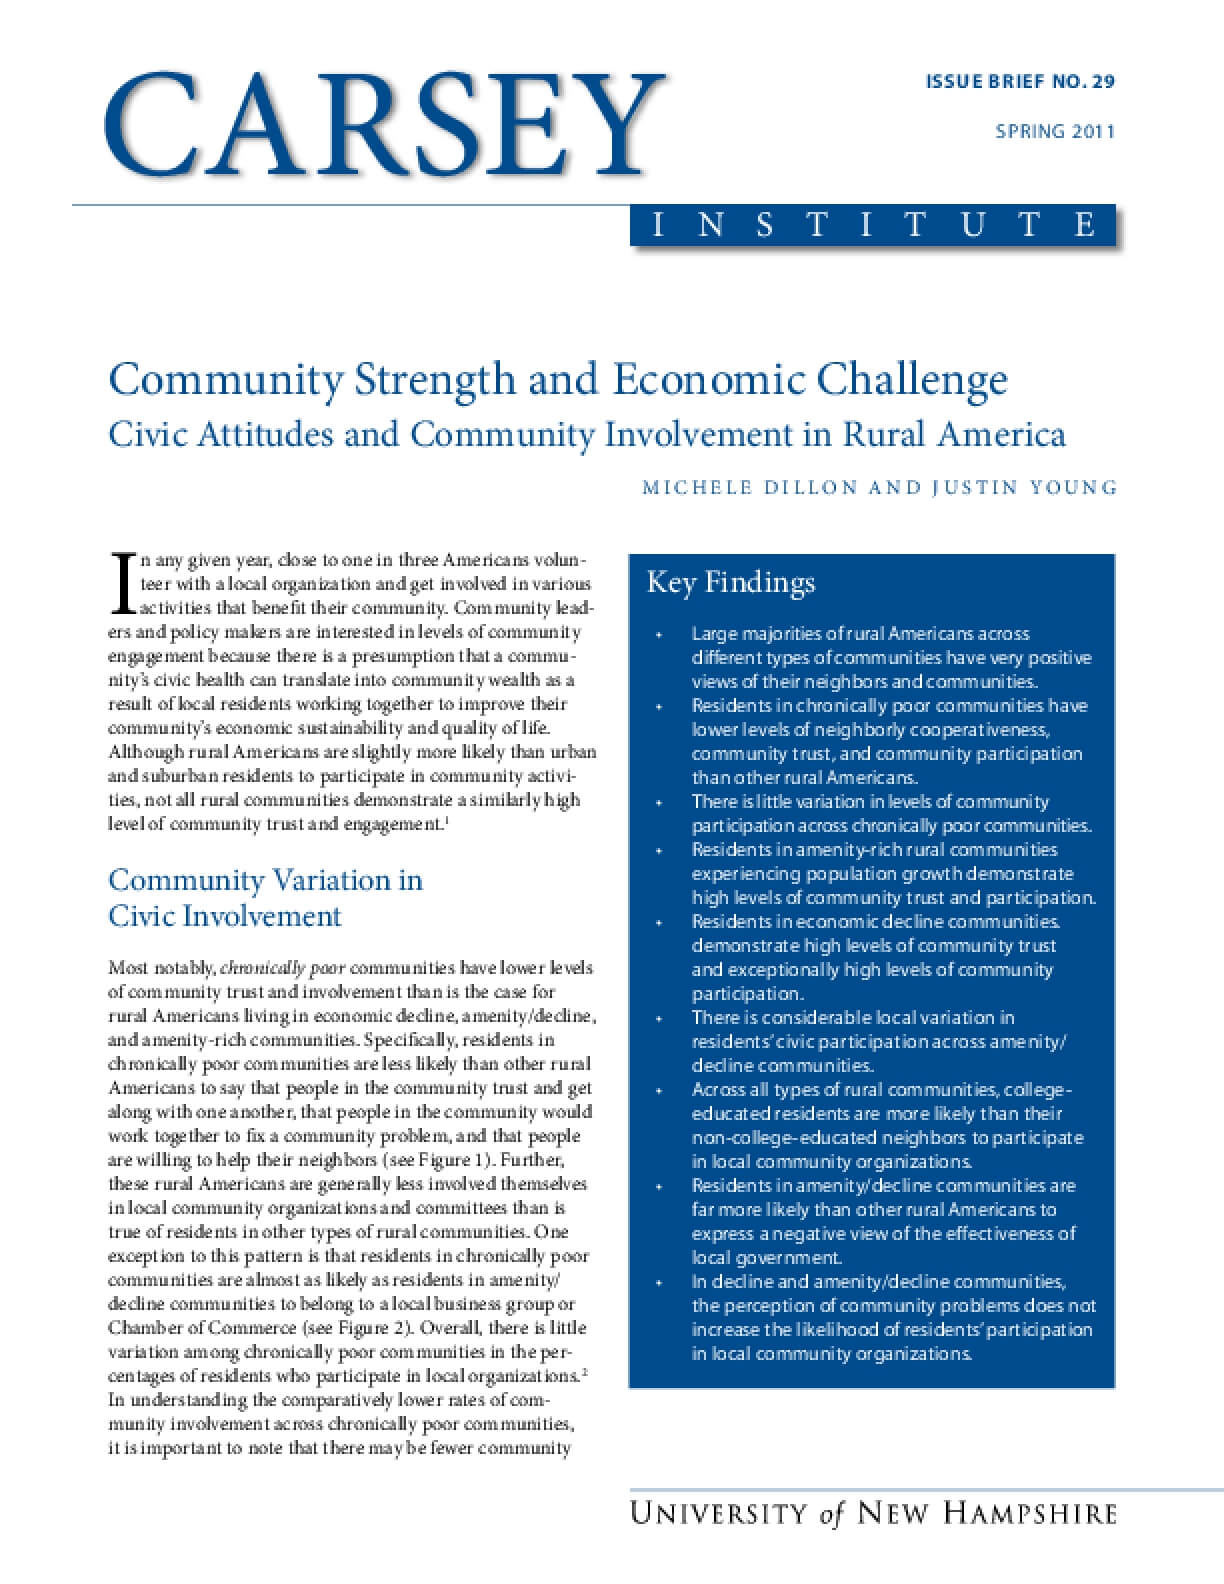 Community Strength and Economic Challenge: Civic Attitudes and Community Involvement in Rural America